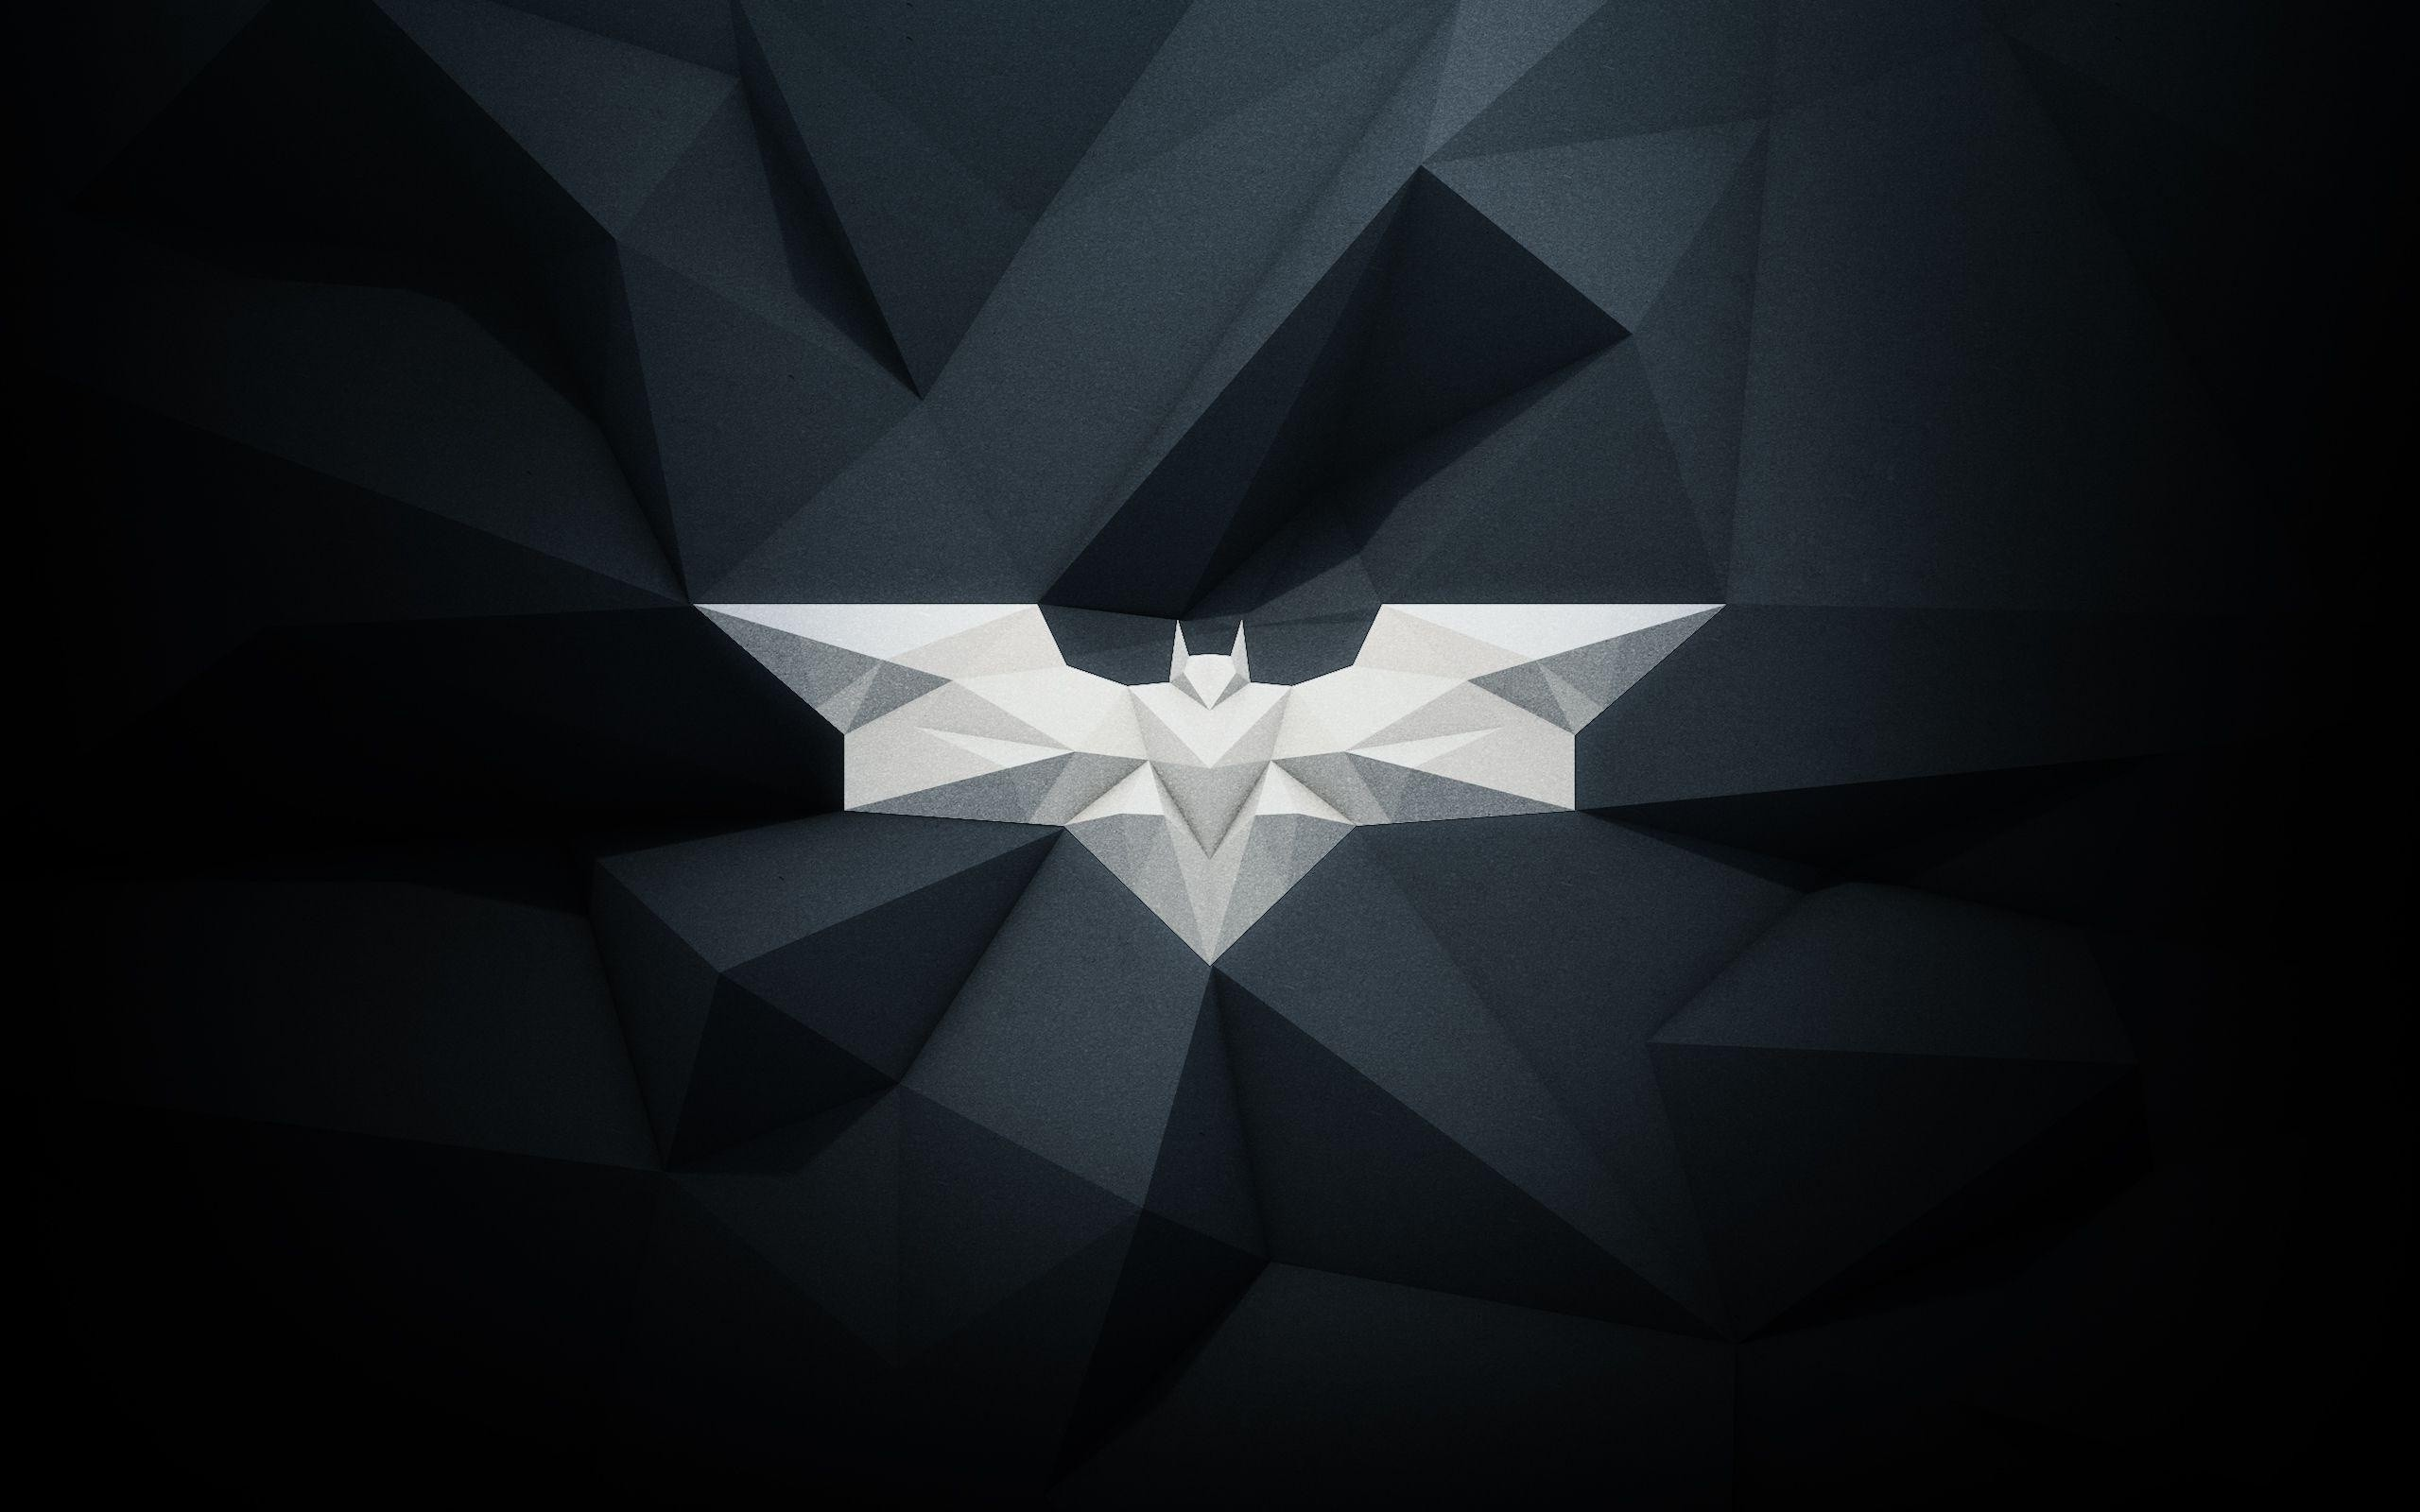 Cool Batman Logo Backgrounds Images amp Pictures   Becuo 2560x1600